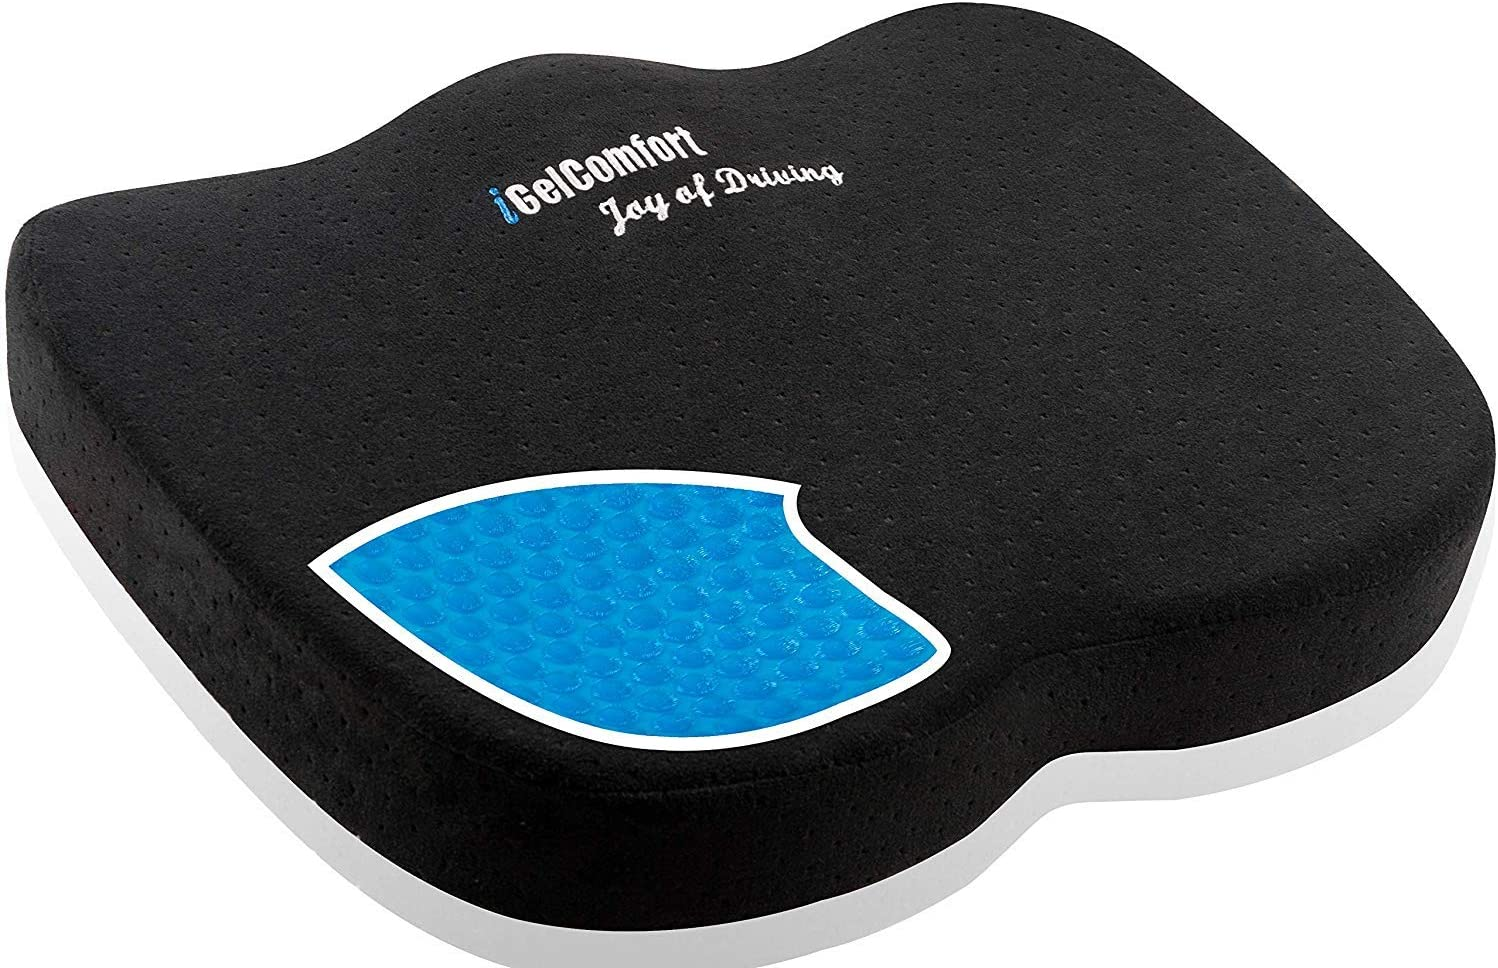 Office Made in USA Car Tailbone For Coccyx Back Chair Travel Postnatal GSeat ULTRA Orthopedic Gel and Foam Seat Cushion and Sciatica Pain//Discomfort Black Prostate